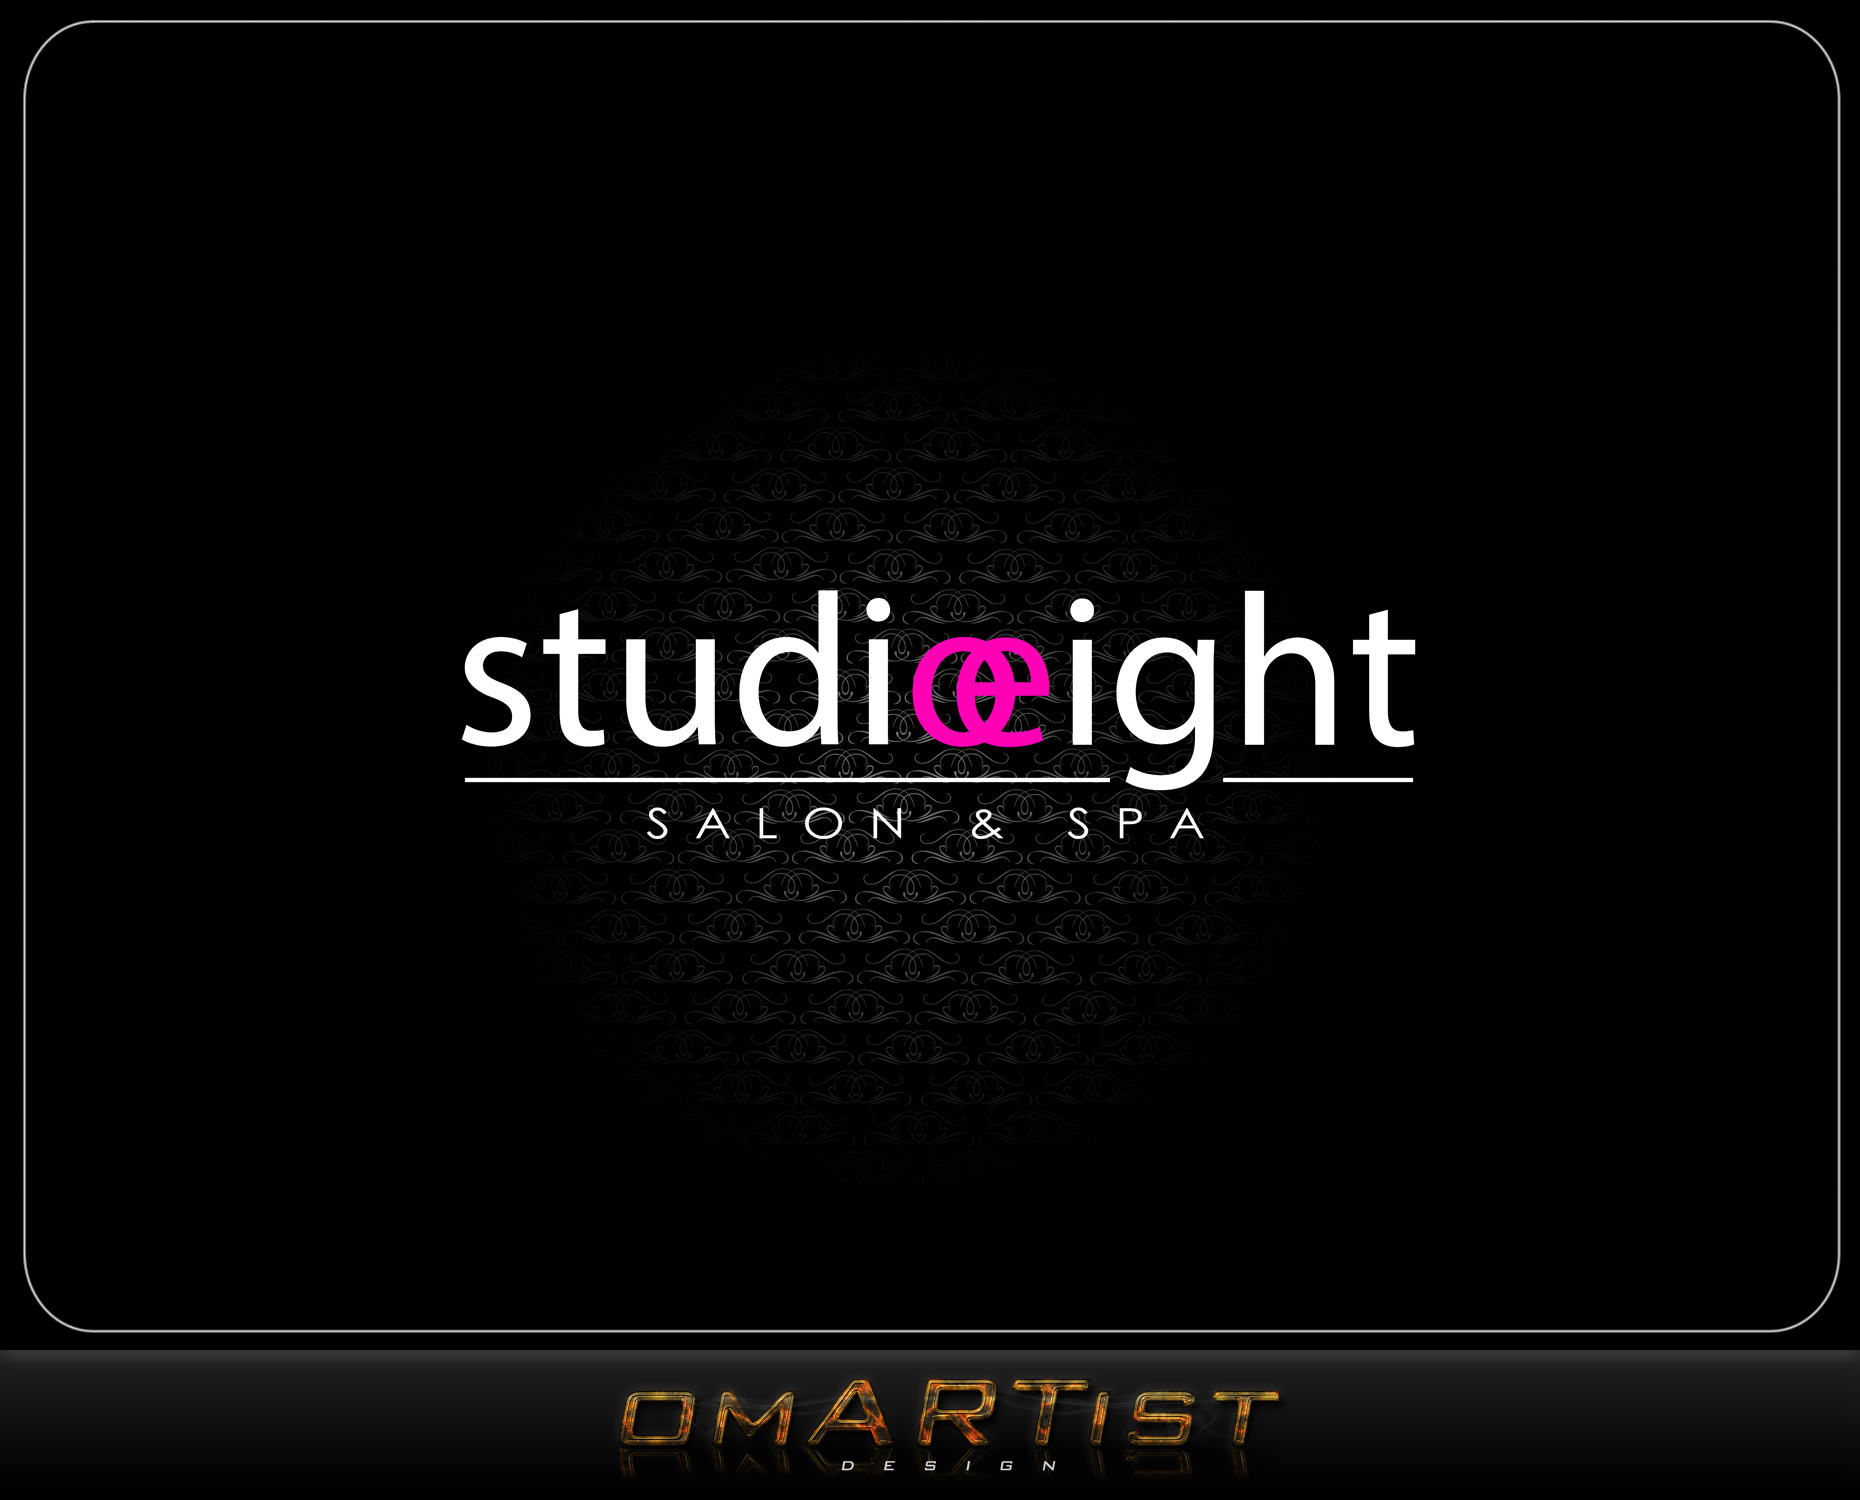 Logo Design by omARTist - Entry No. 95 in the Logo Design Contest Captivating Logo Design for studio eight salon & spa.